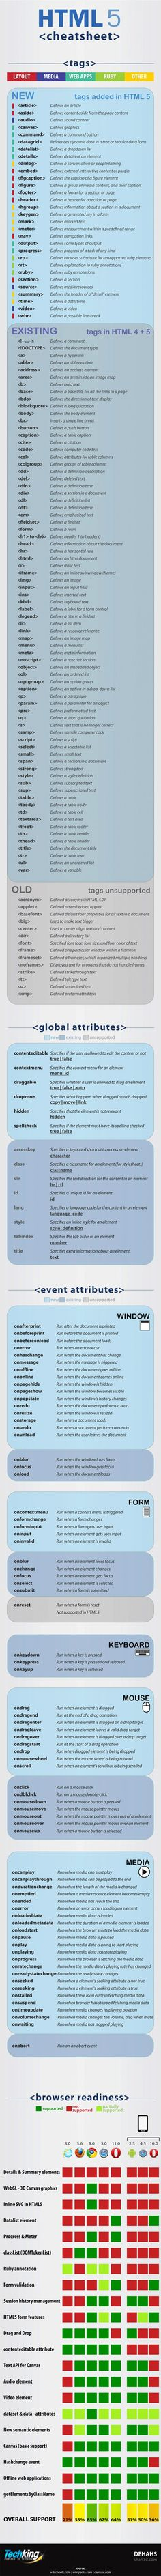 HTML 5 Cheetsheet infographic  -  found at http://infographipedia.com/ social-media-digital-marketing-html5-cheatsheat-infographic-cosa%C2%AC-non-disturbera%C2%B2-pia%C2%B9-rosati_luca-chiedendogli-dettagli-in-merito.html